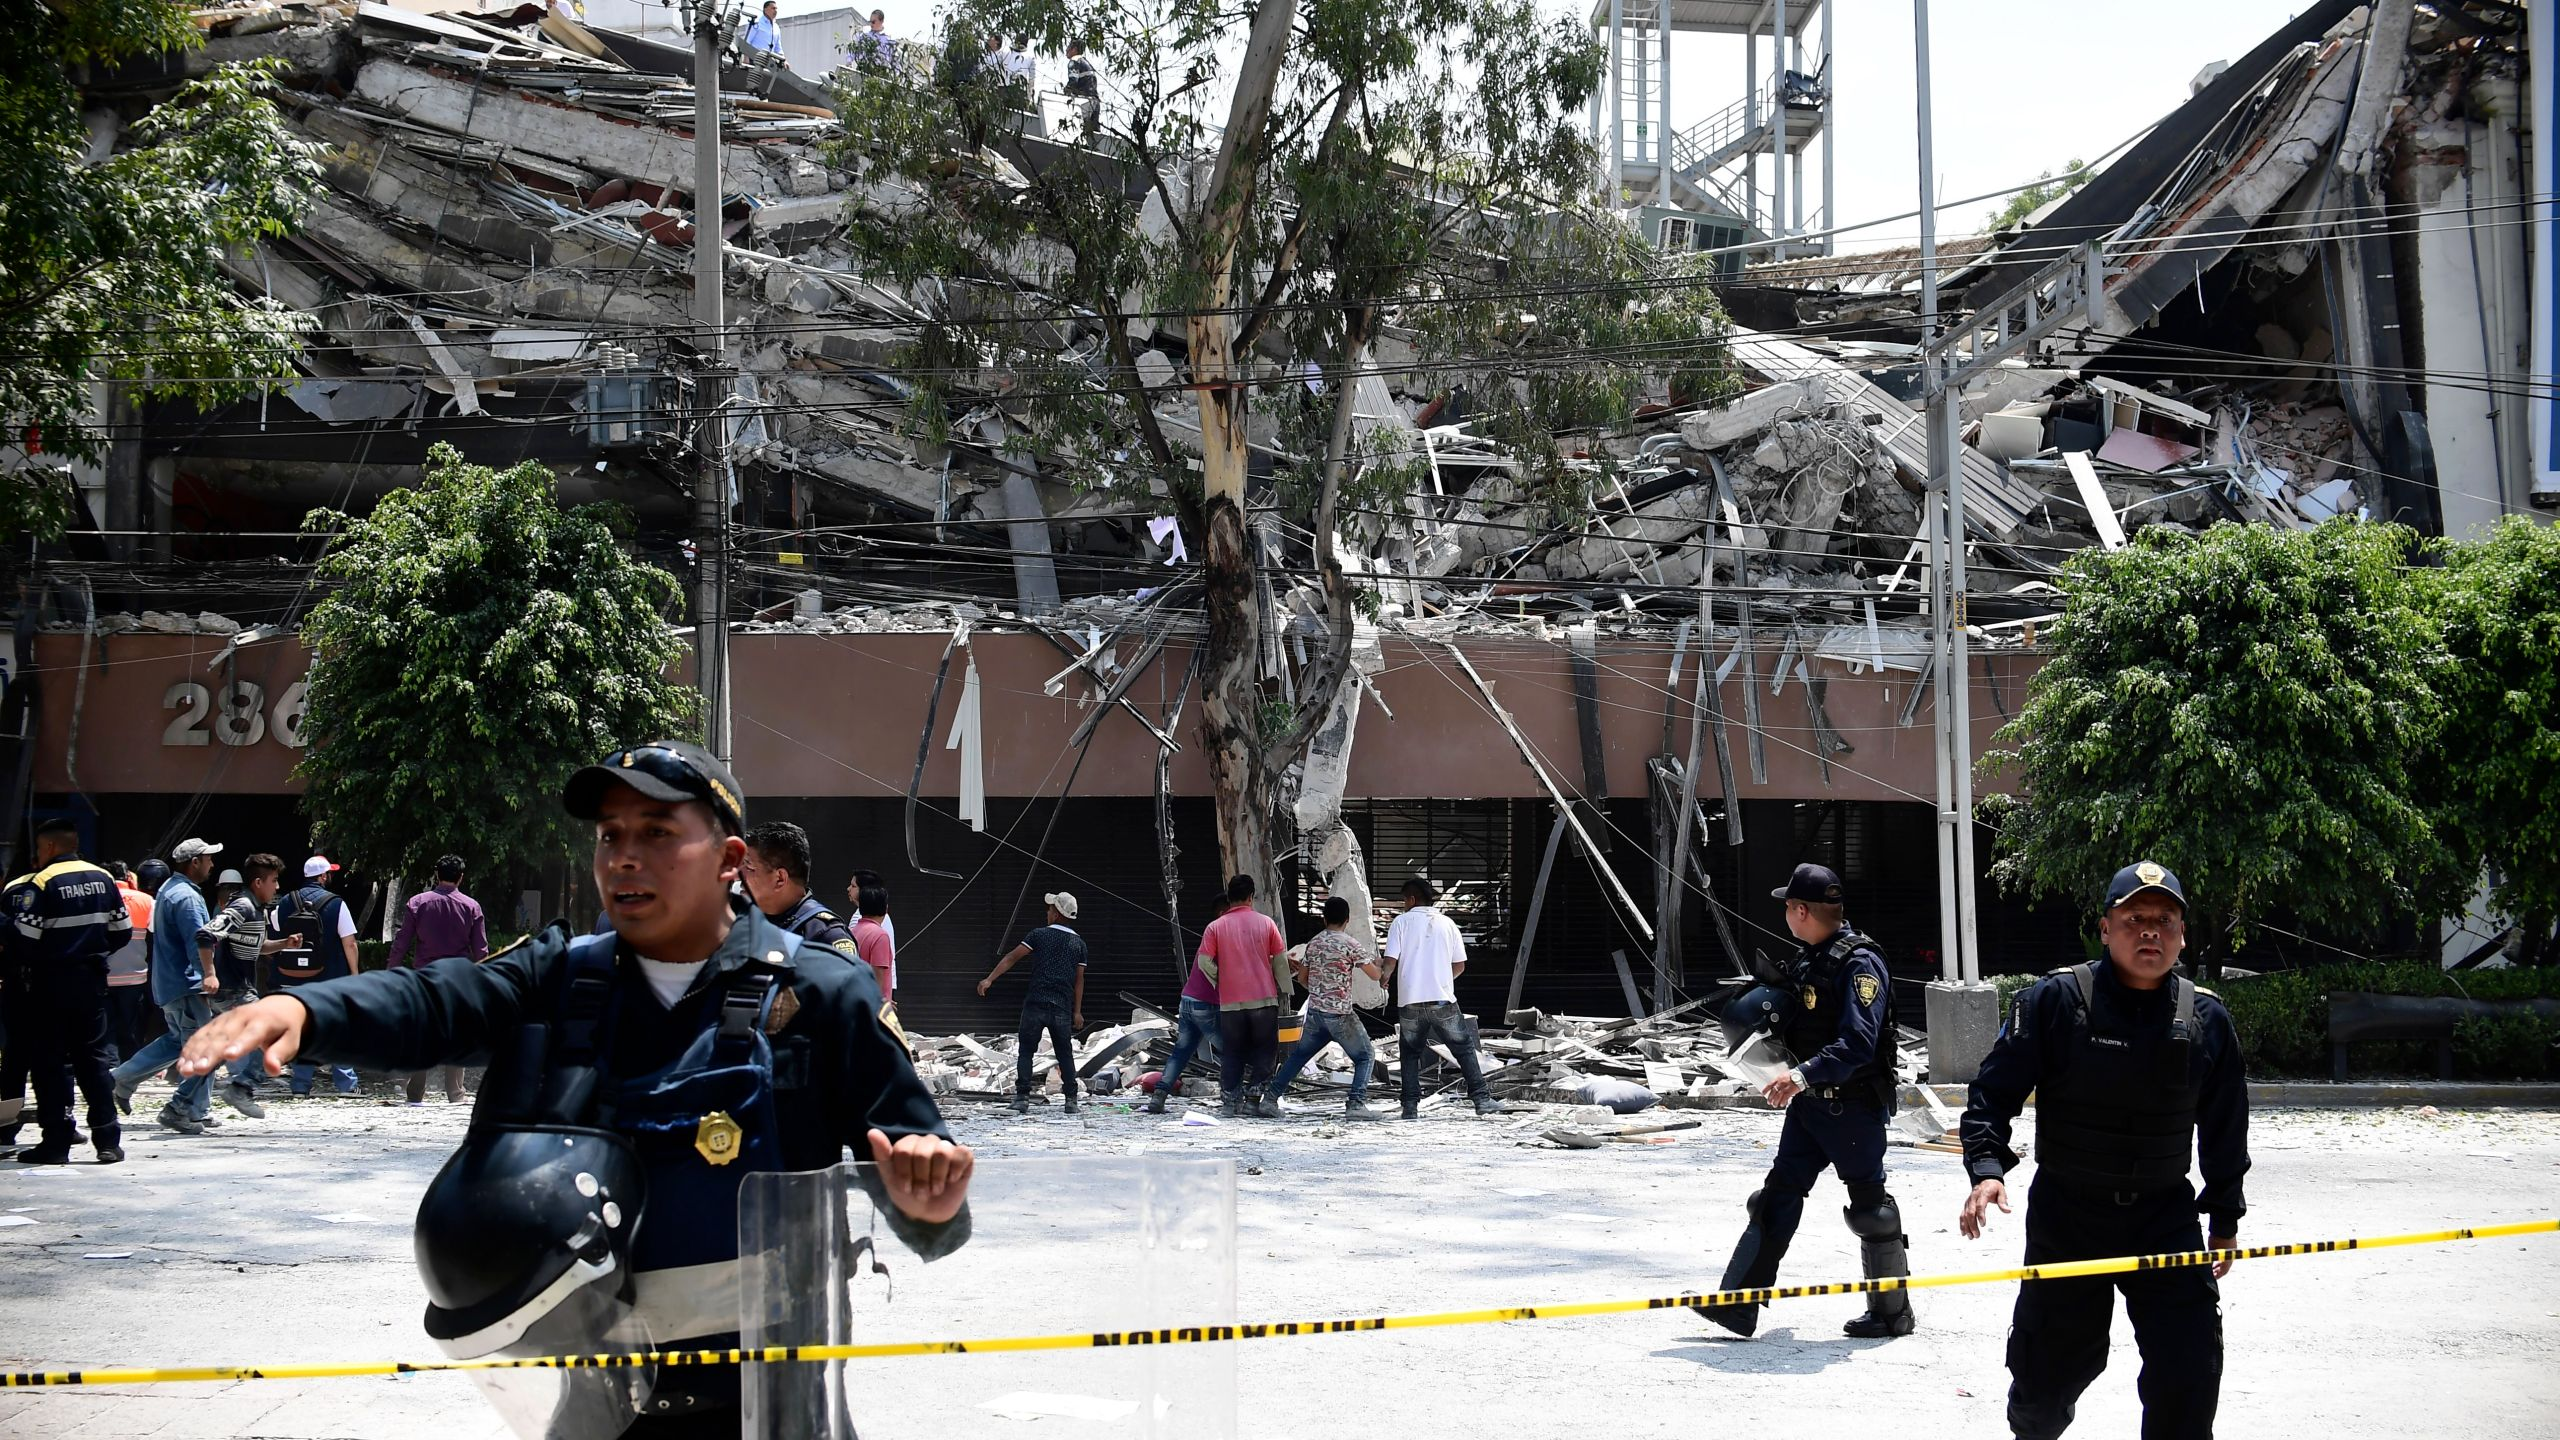 Police officers cordon the area off after a building collapsed during a quake in Mexico City on Sept. 19, 2017. (Credit: RONALDO SCHEMIDT/AFP/Getty Images)